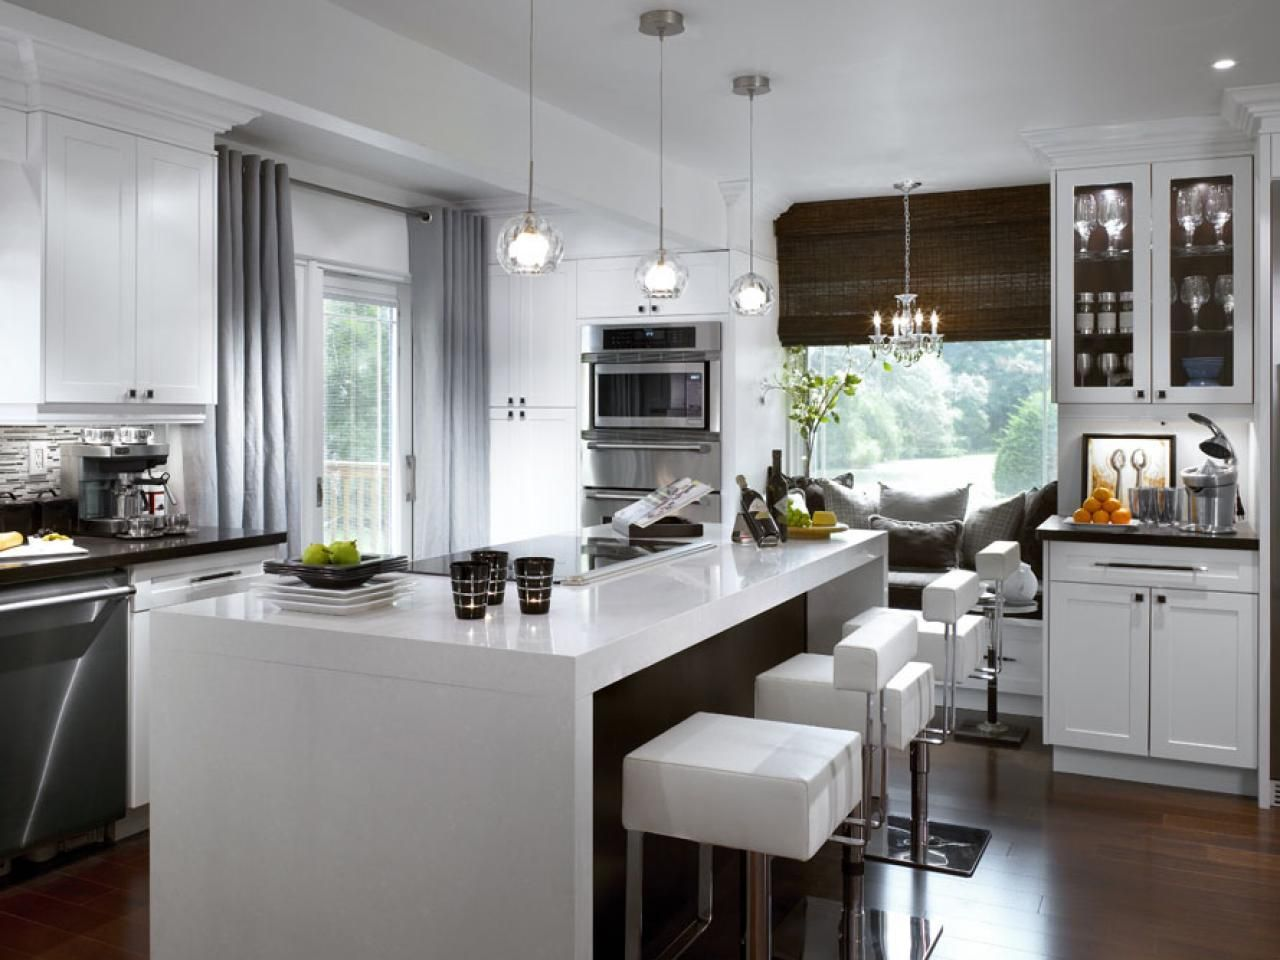 Candice Olson S Kitchen Design Ideas White Quartz Martinkeeis Me 100 Divine  Images Lichterloh.